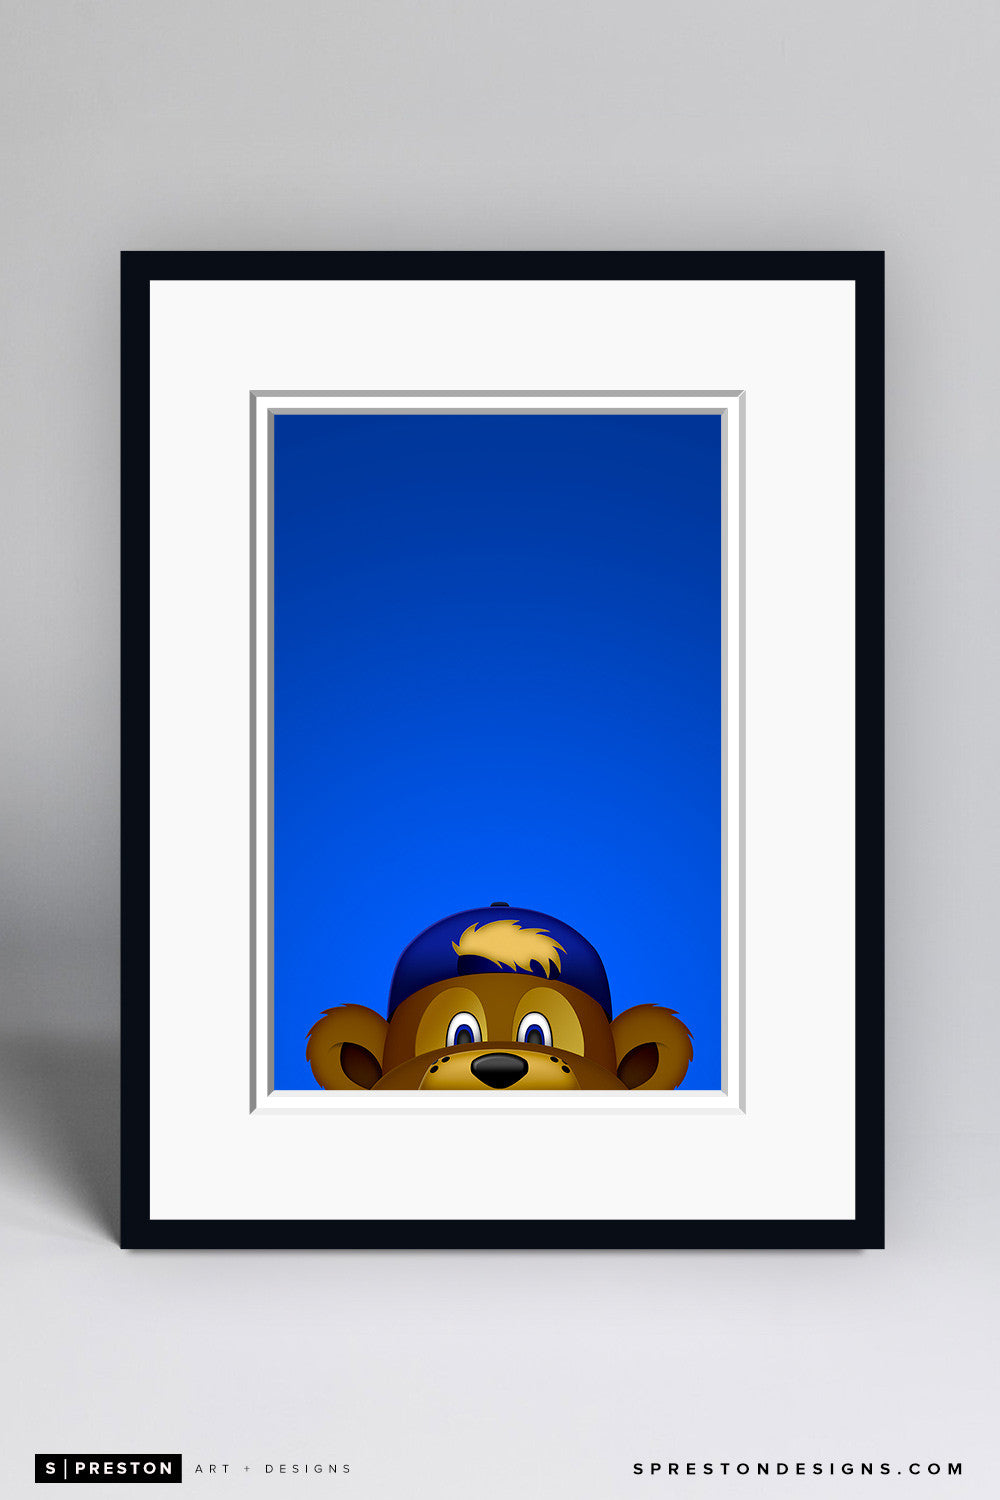 Minimalist Clark The Cub - Chicago Cubs - S. Preston